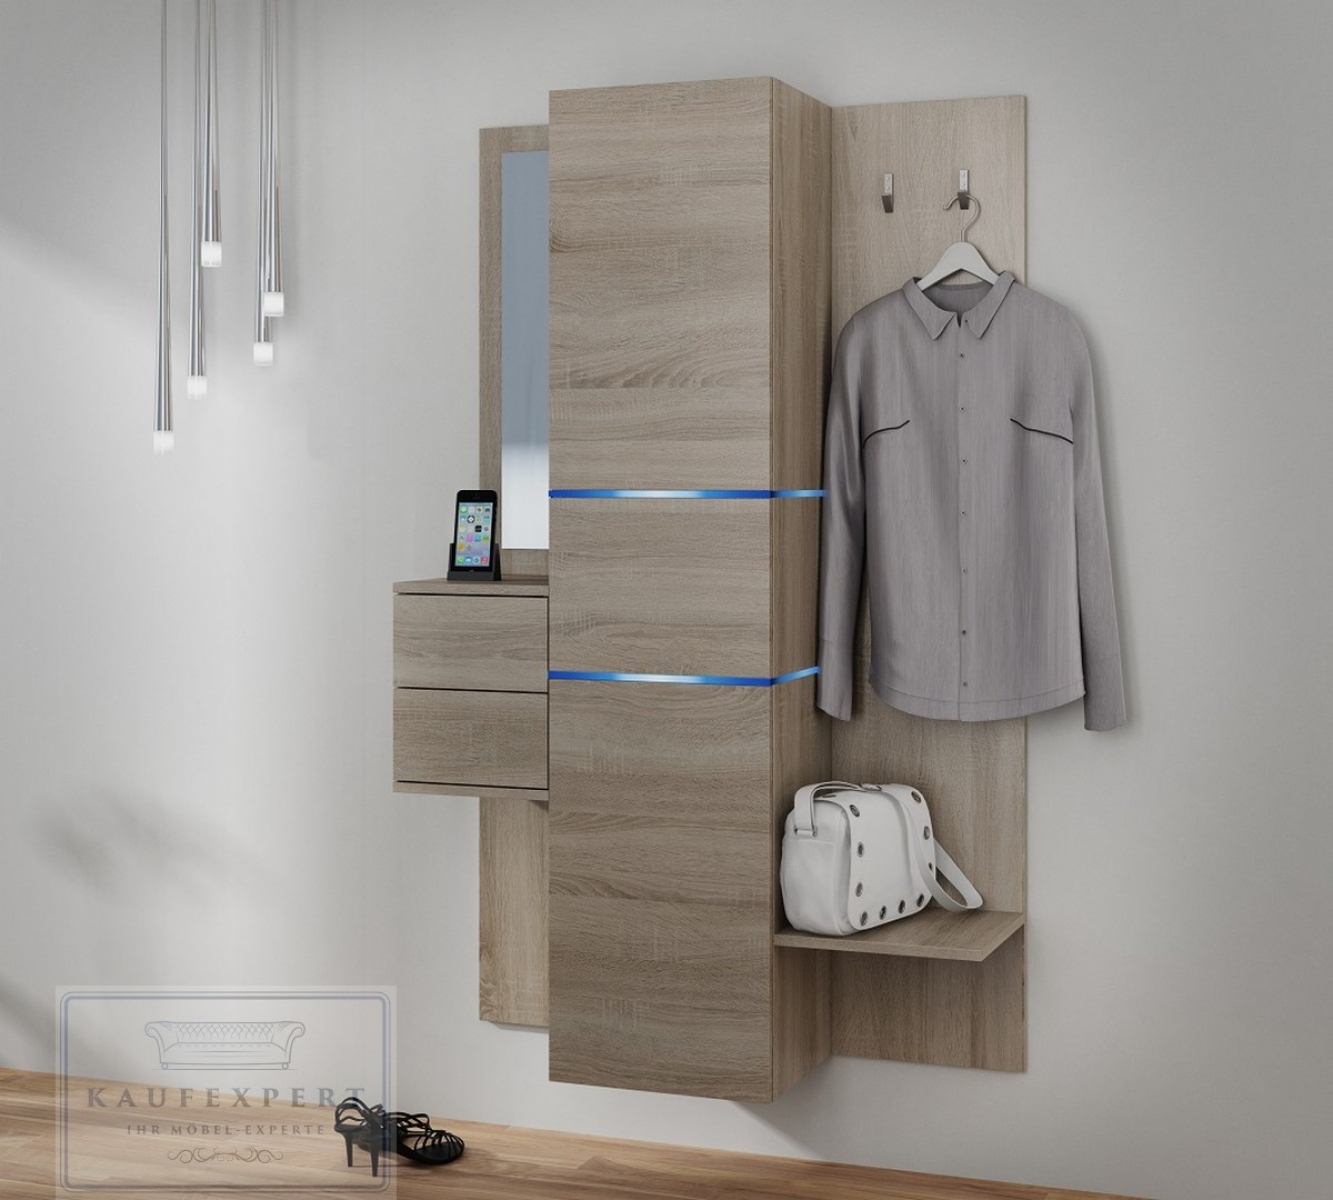 kaufexpert garderobe camino sonoma tabac mit spiegel led beleuchtung garderoben set. Black Bedroom Furniture Sets. Home Design Ideas